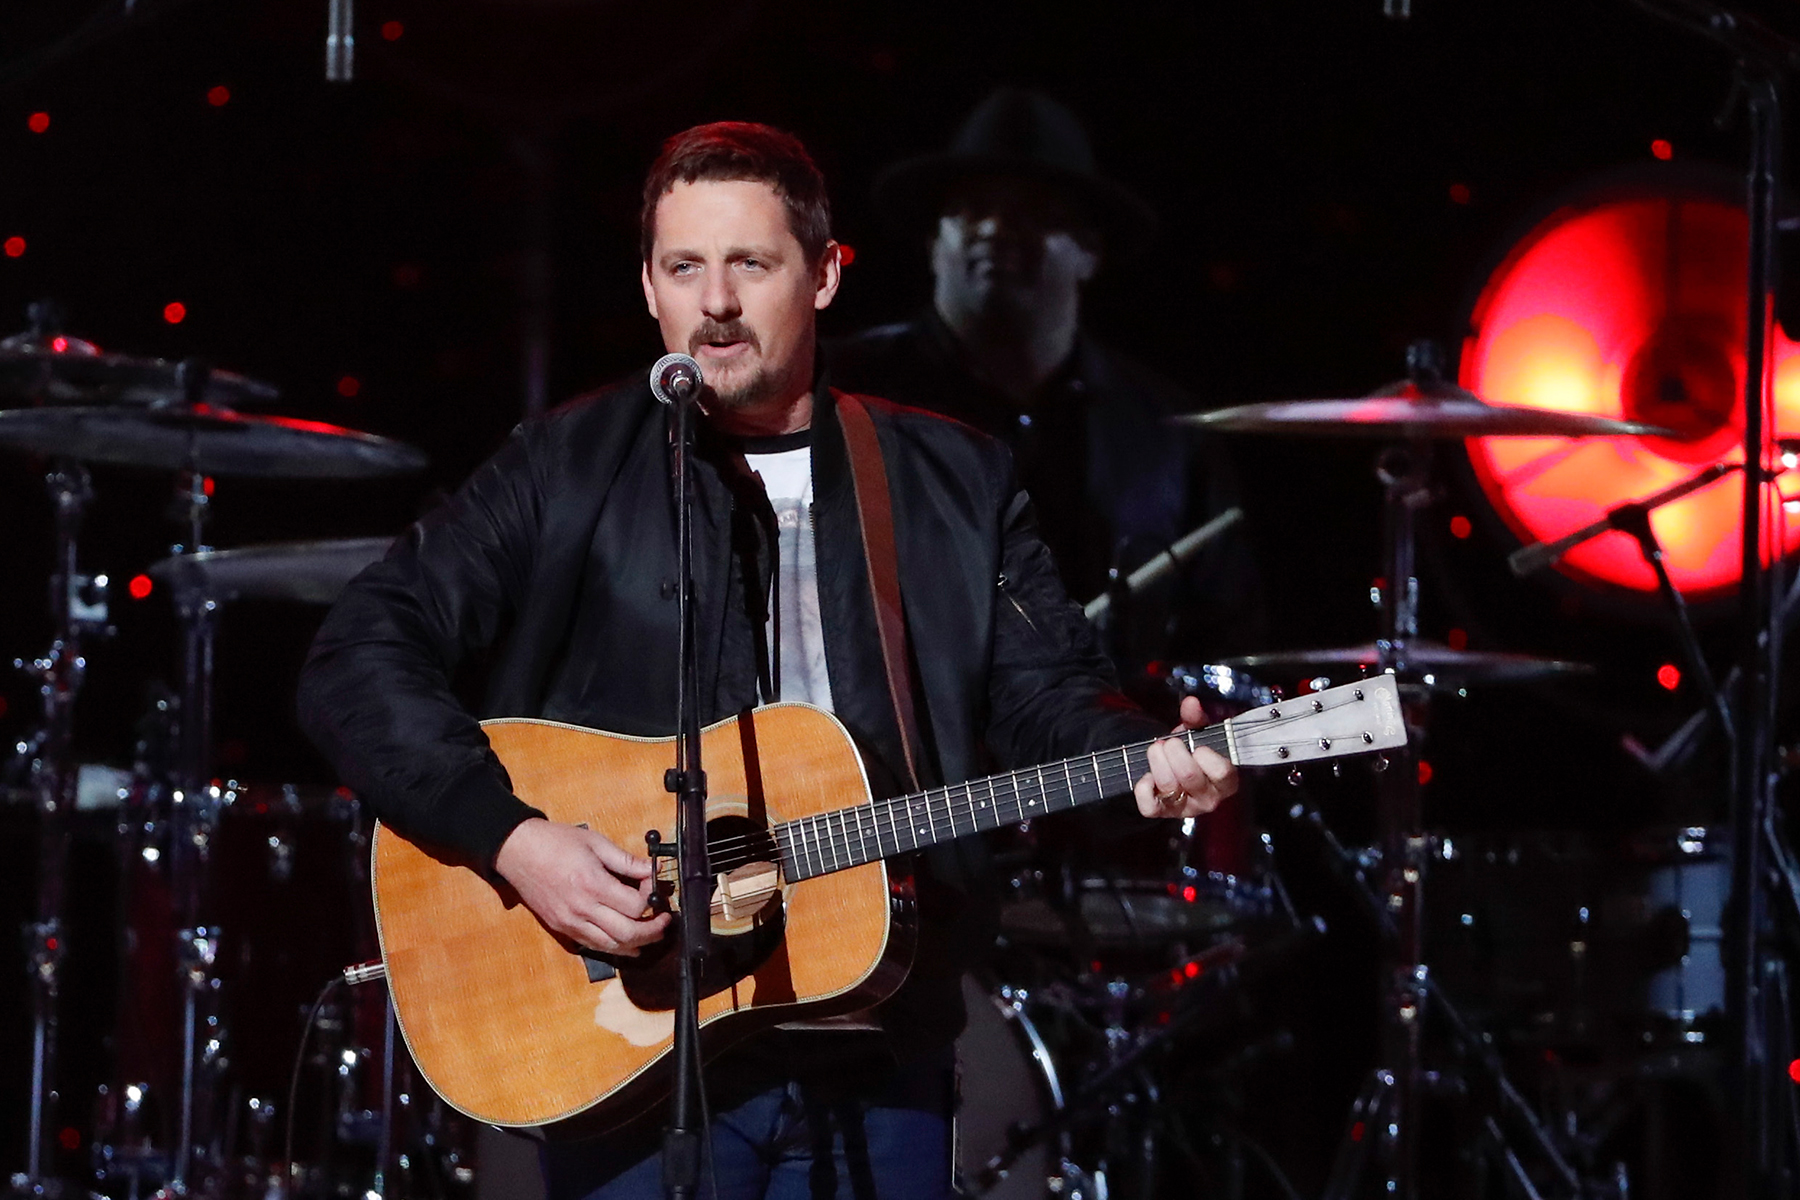 Sturgill Simpson performs at Willie: Life & Songs Of An American Outlaw at Bridgestone Arena on Saturday, January 12, 2019, in Nashville, Tenn. (Photo by Al Wagner/Invision/AP)